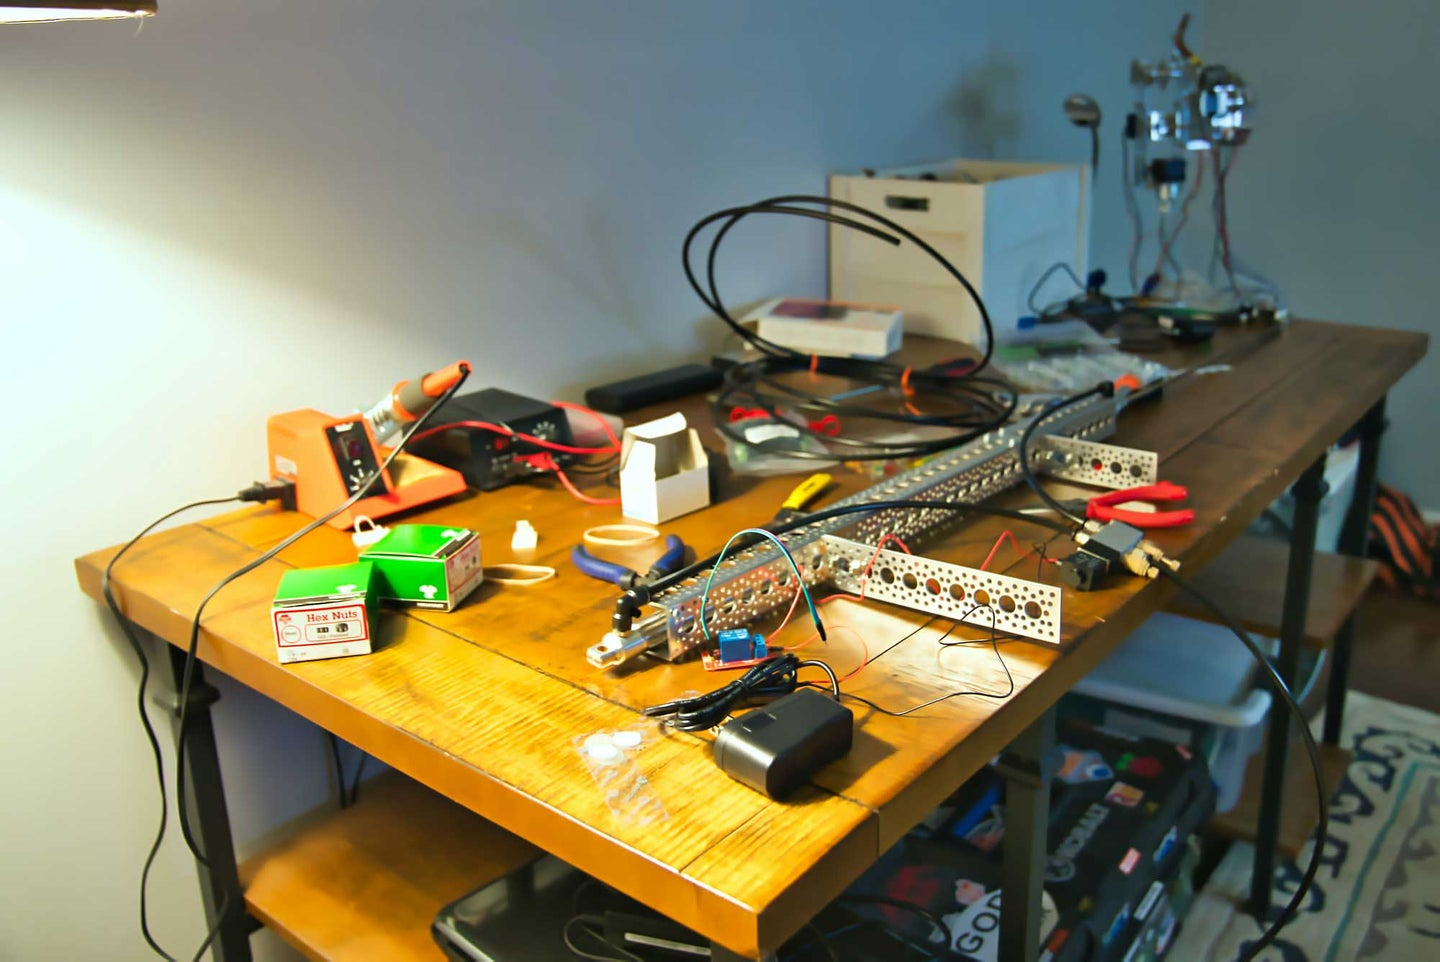 Electrical supplies on a work bench